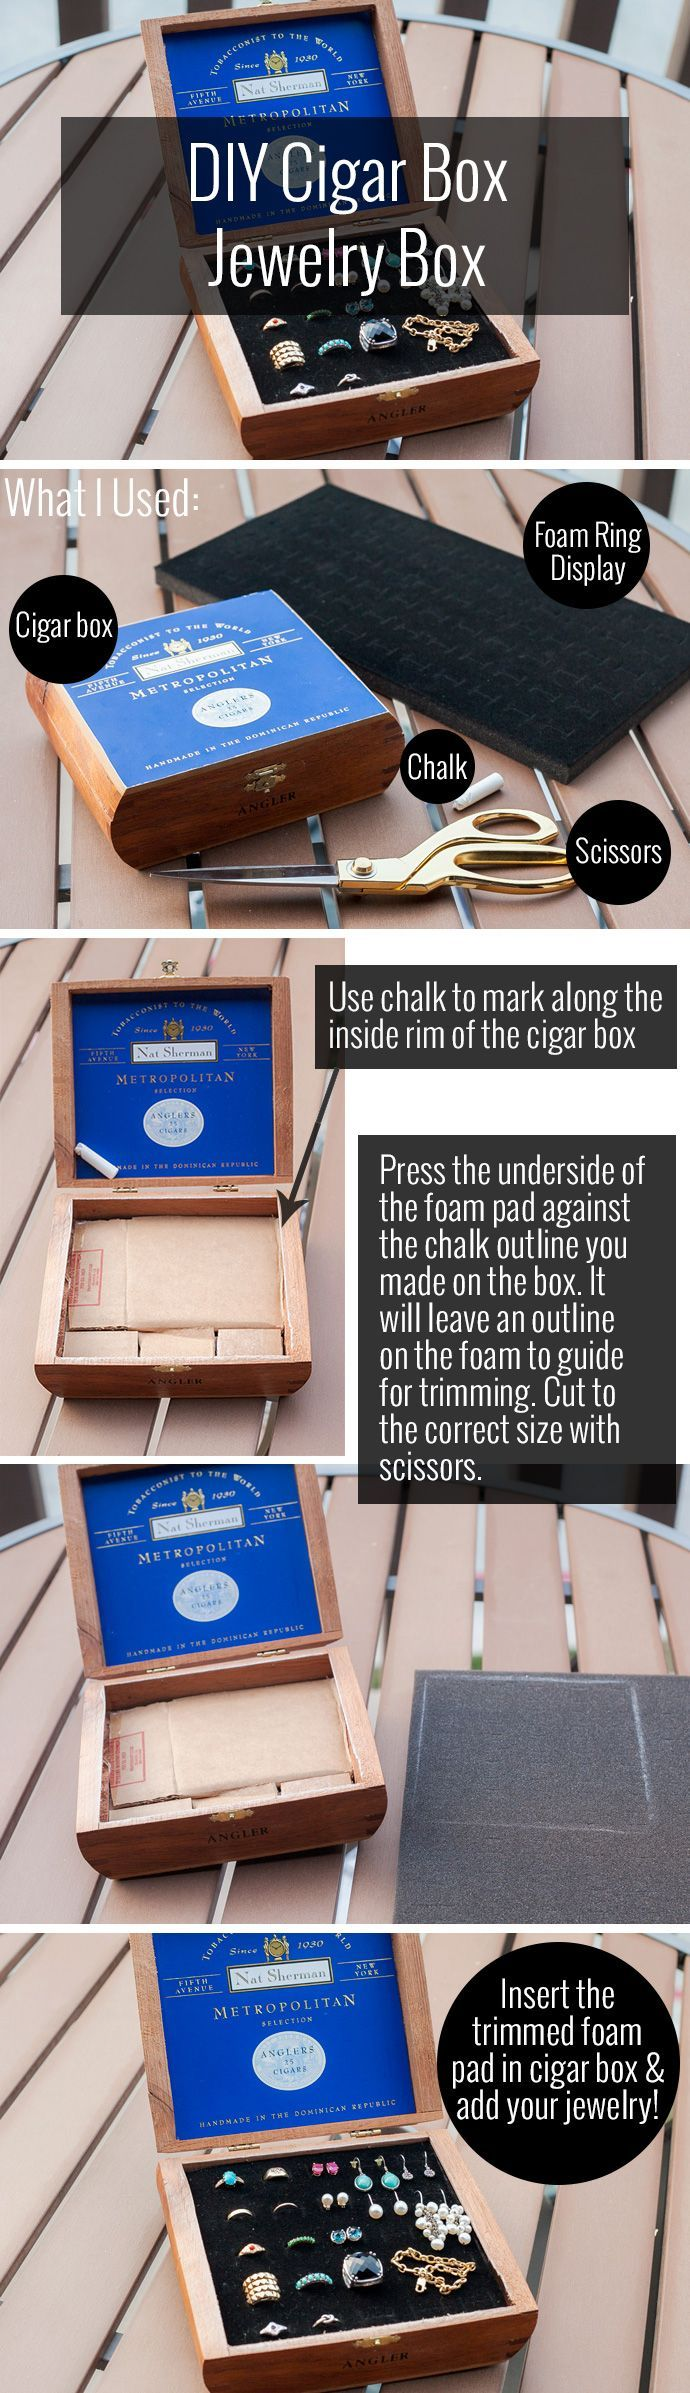 DIY Cigar Box Jewelry Box - Alterations Needed... could use for watches?